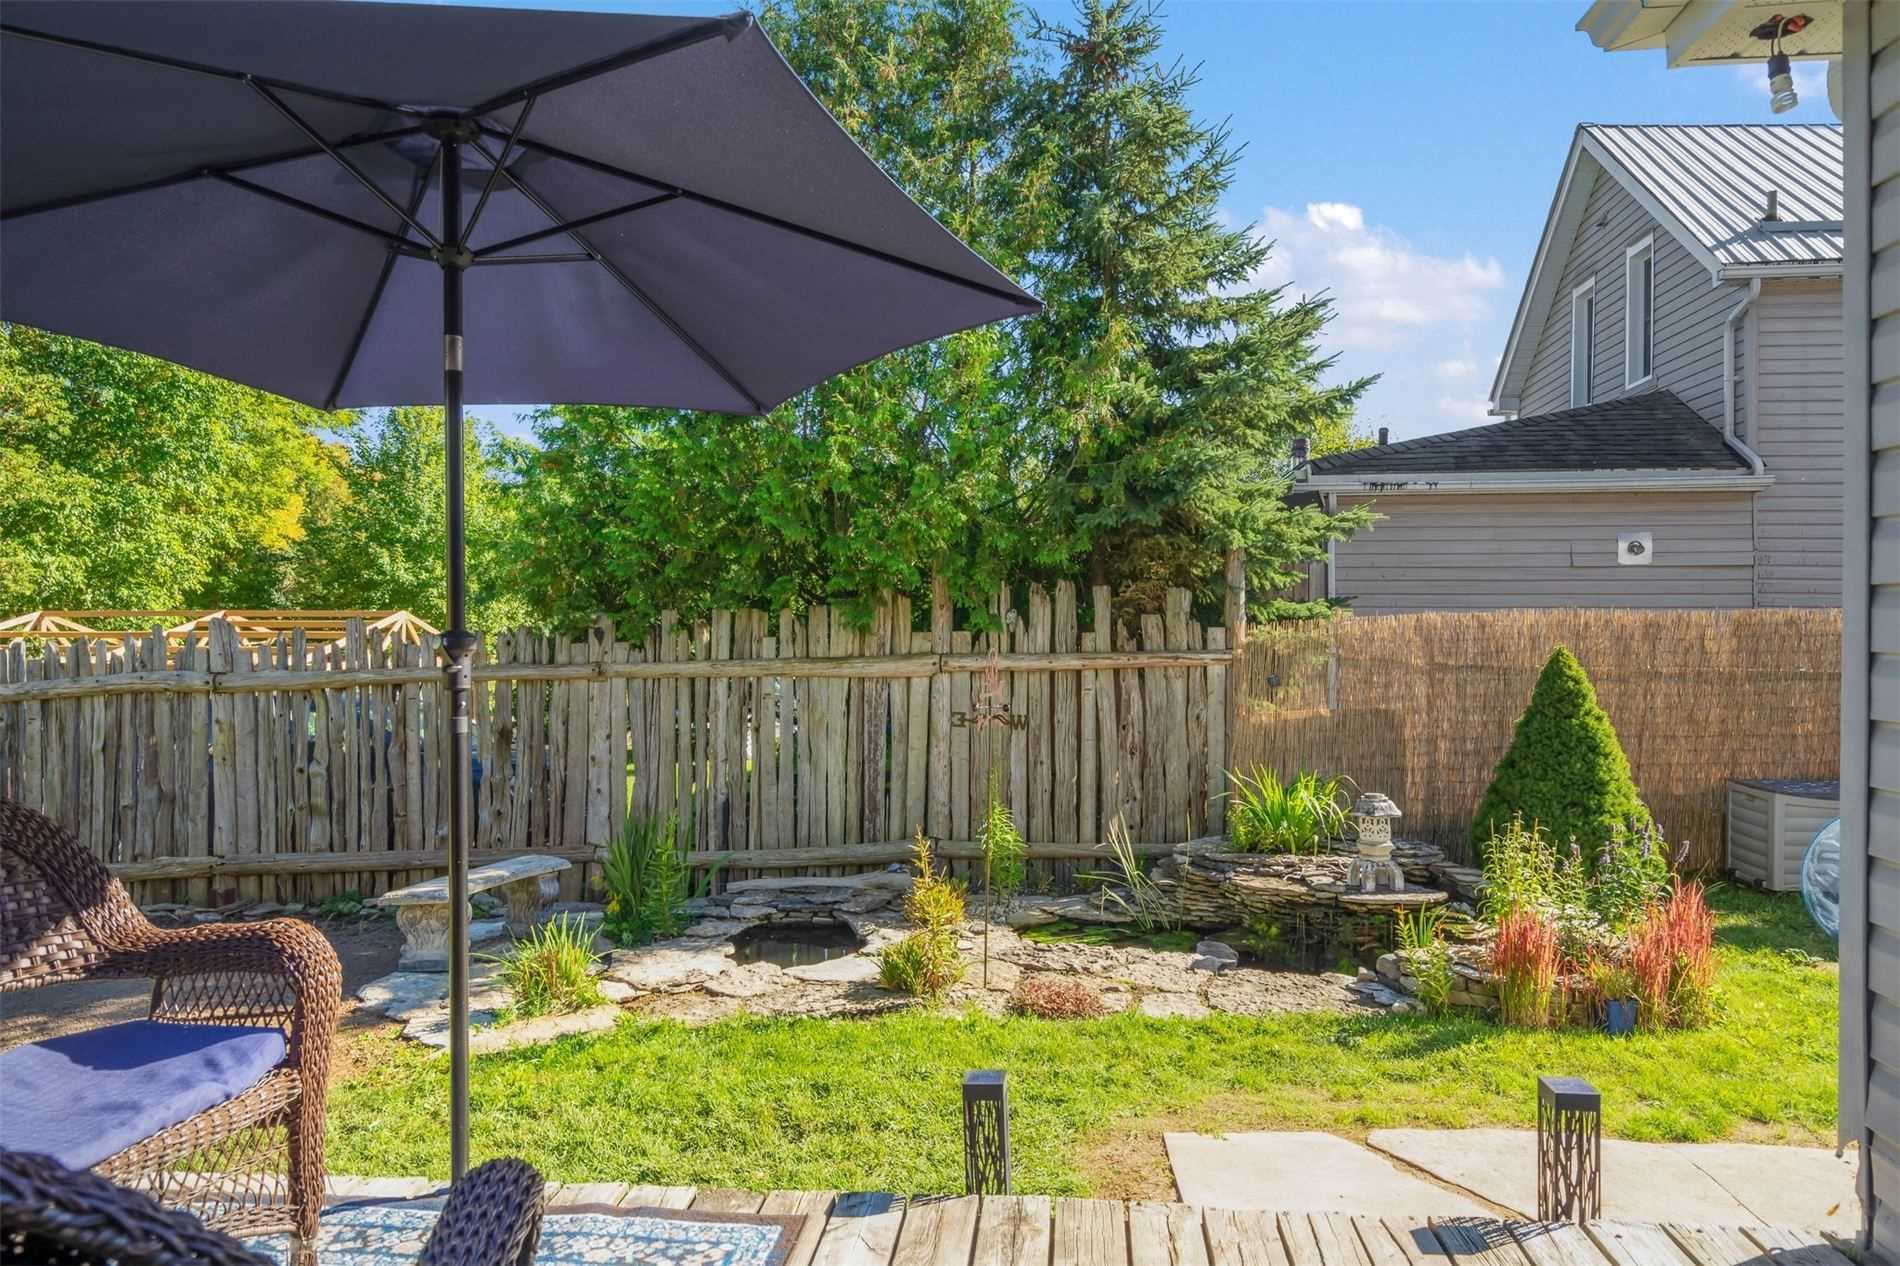 Detached house For Sale In East Luther Grand Valley - 29 Ponsford St, East Luther Grand Valley, Ontario, Canada L9W 5W7 , 3 Bedrooms Bedrooms, ,1 BathroomBathrooms,Detached,For Sale,Ponsford